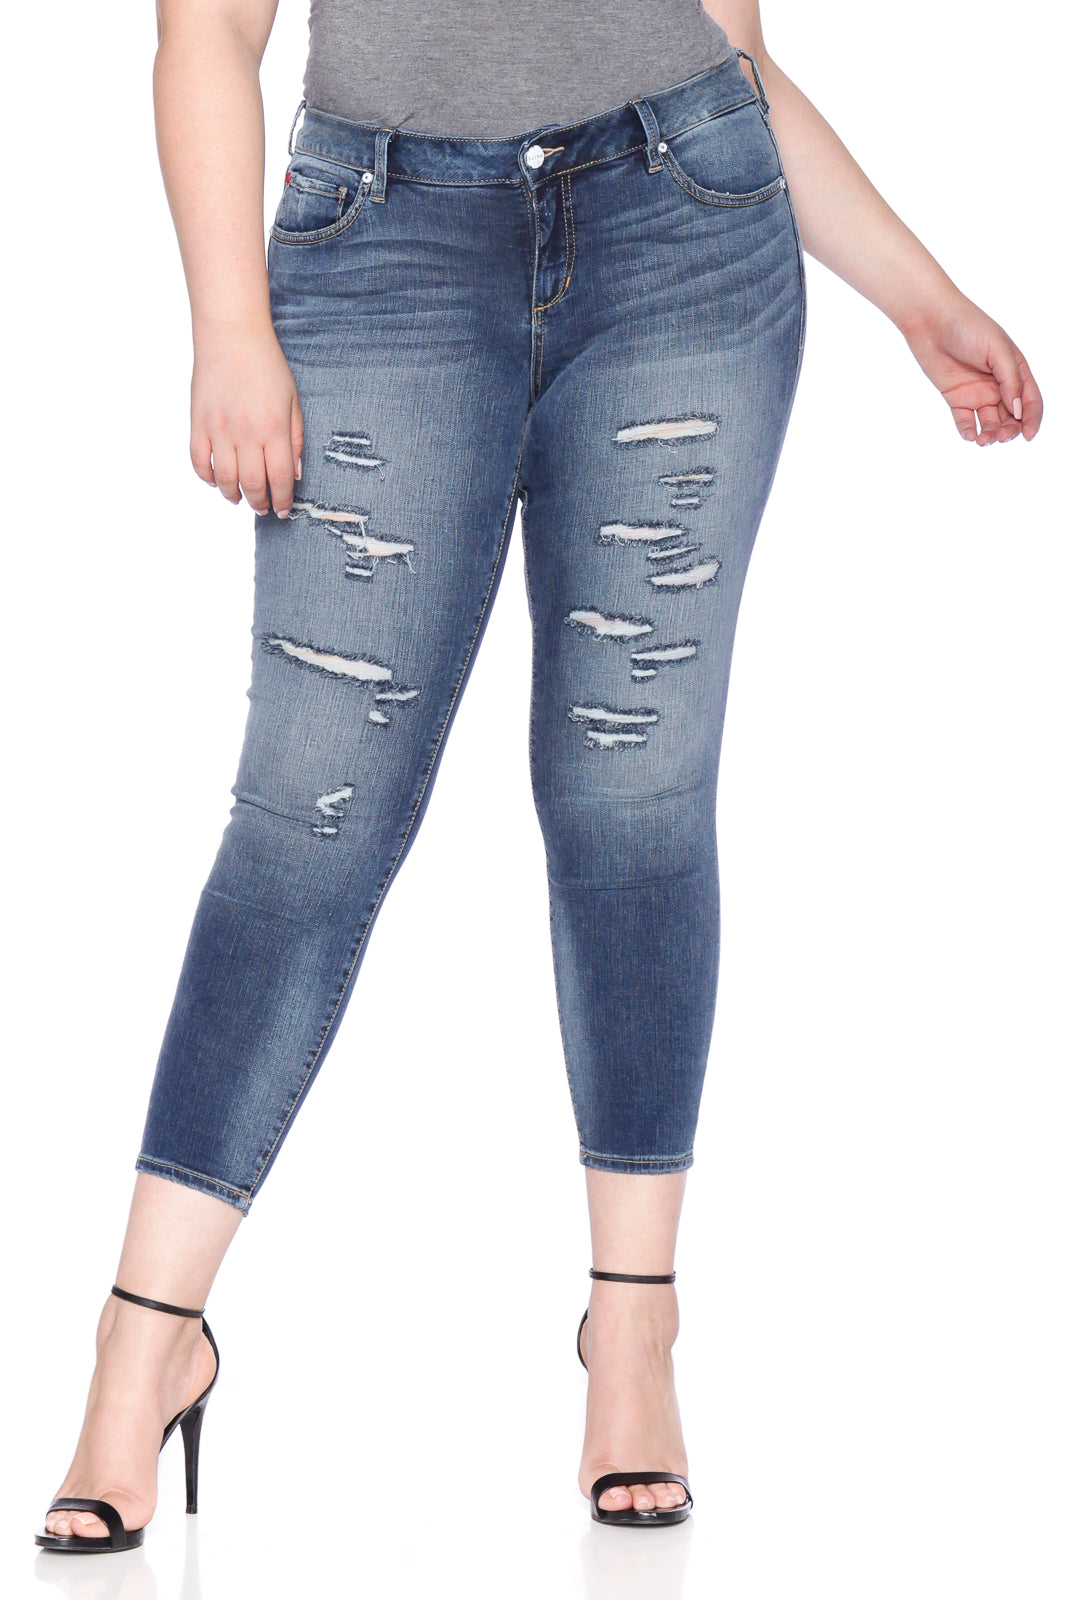 The Ankle Slim Jegging - DANIKA